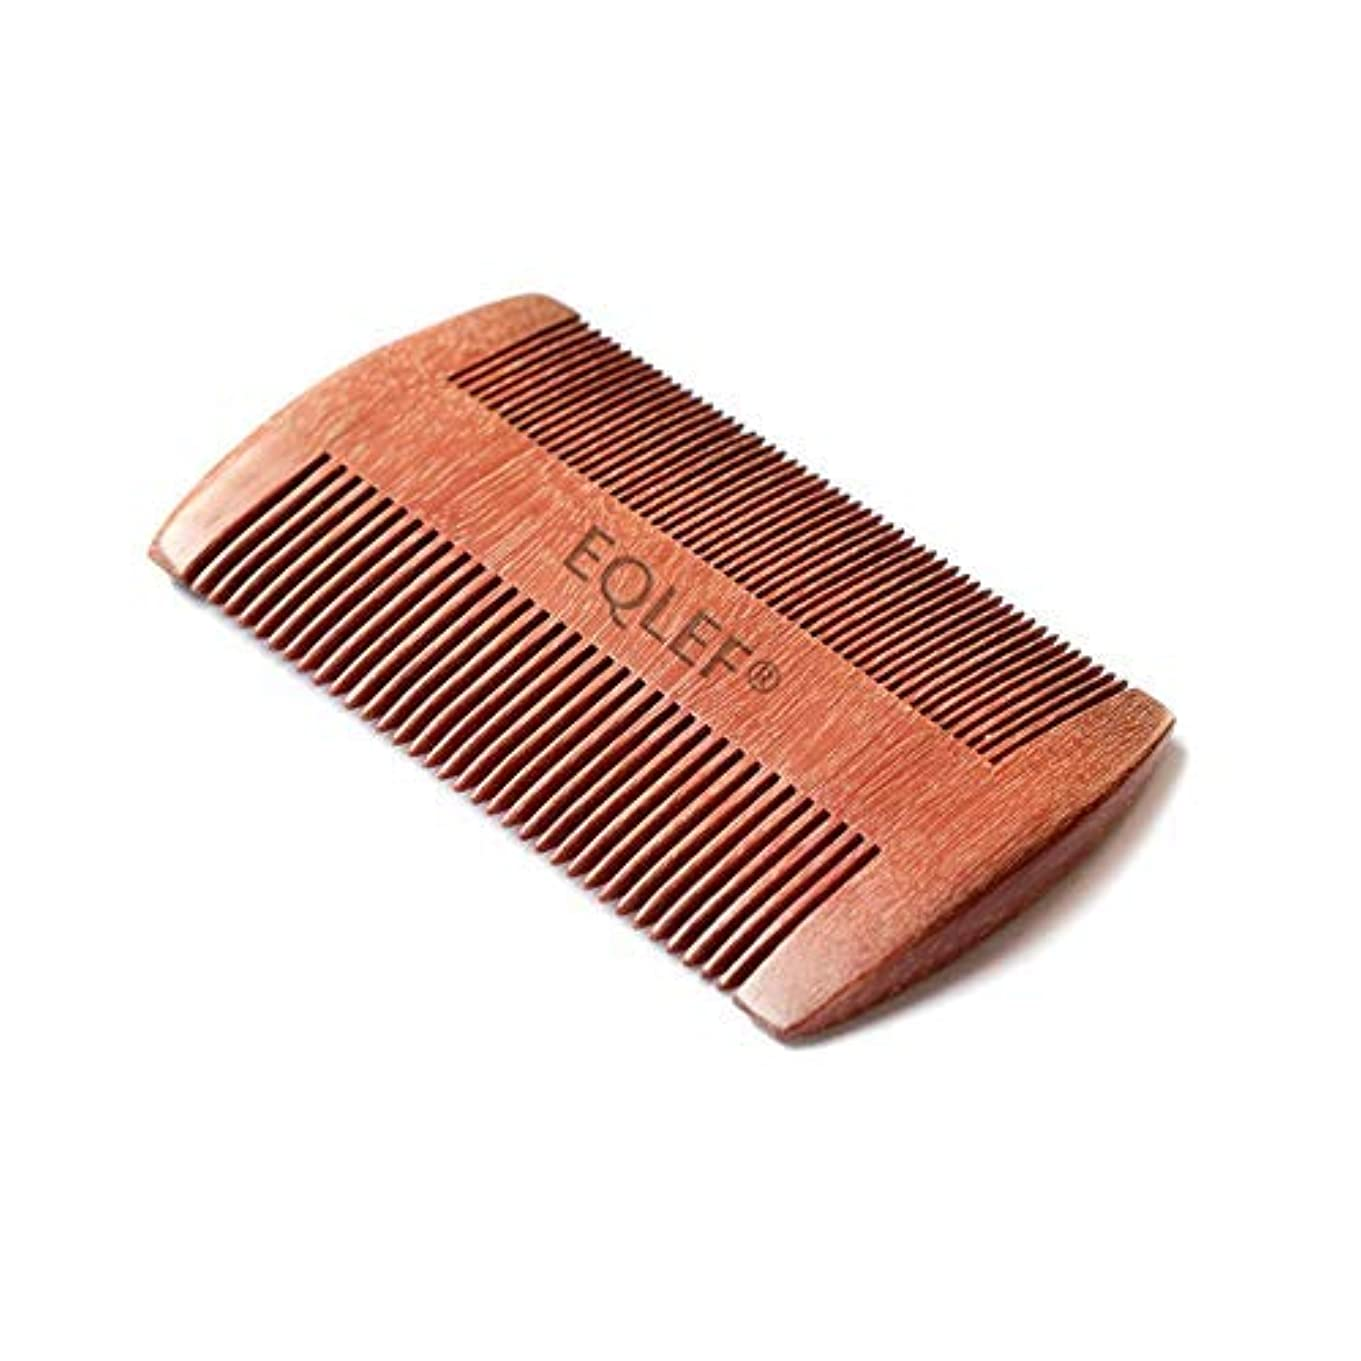 推測する流出幹EQLEF? Red sandalwood no static handmade comb, Pocket comb (beard) [並行輸入品]